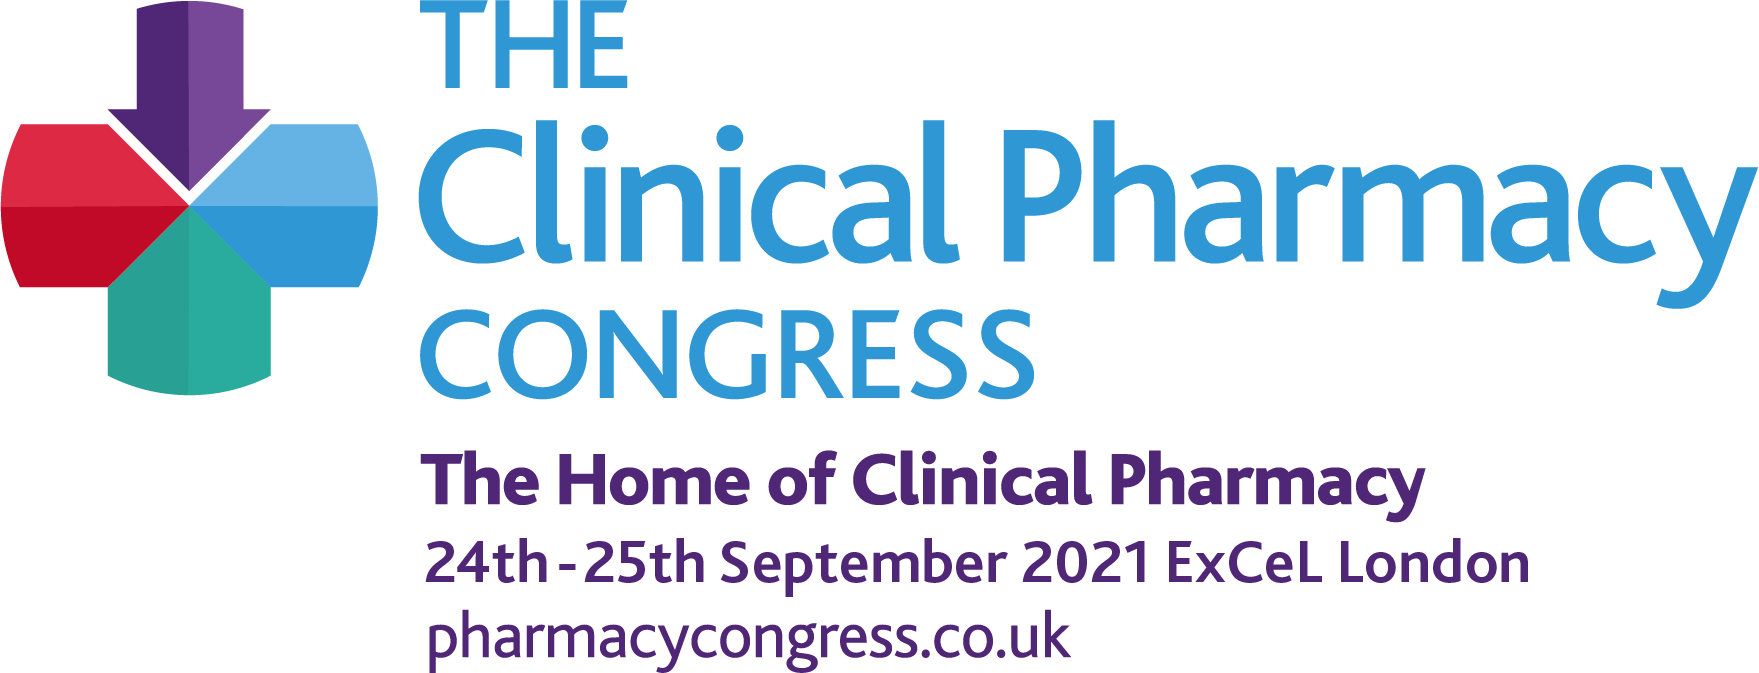 The Clinical Pharmacy Congress is back